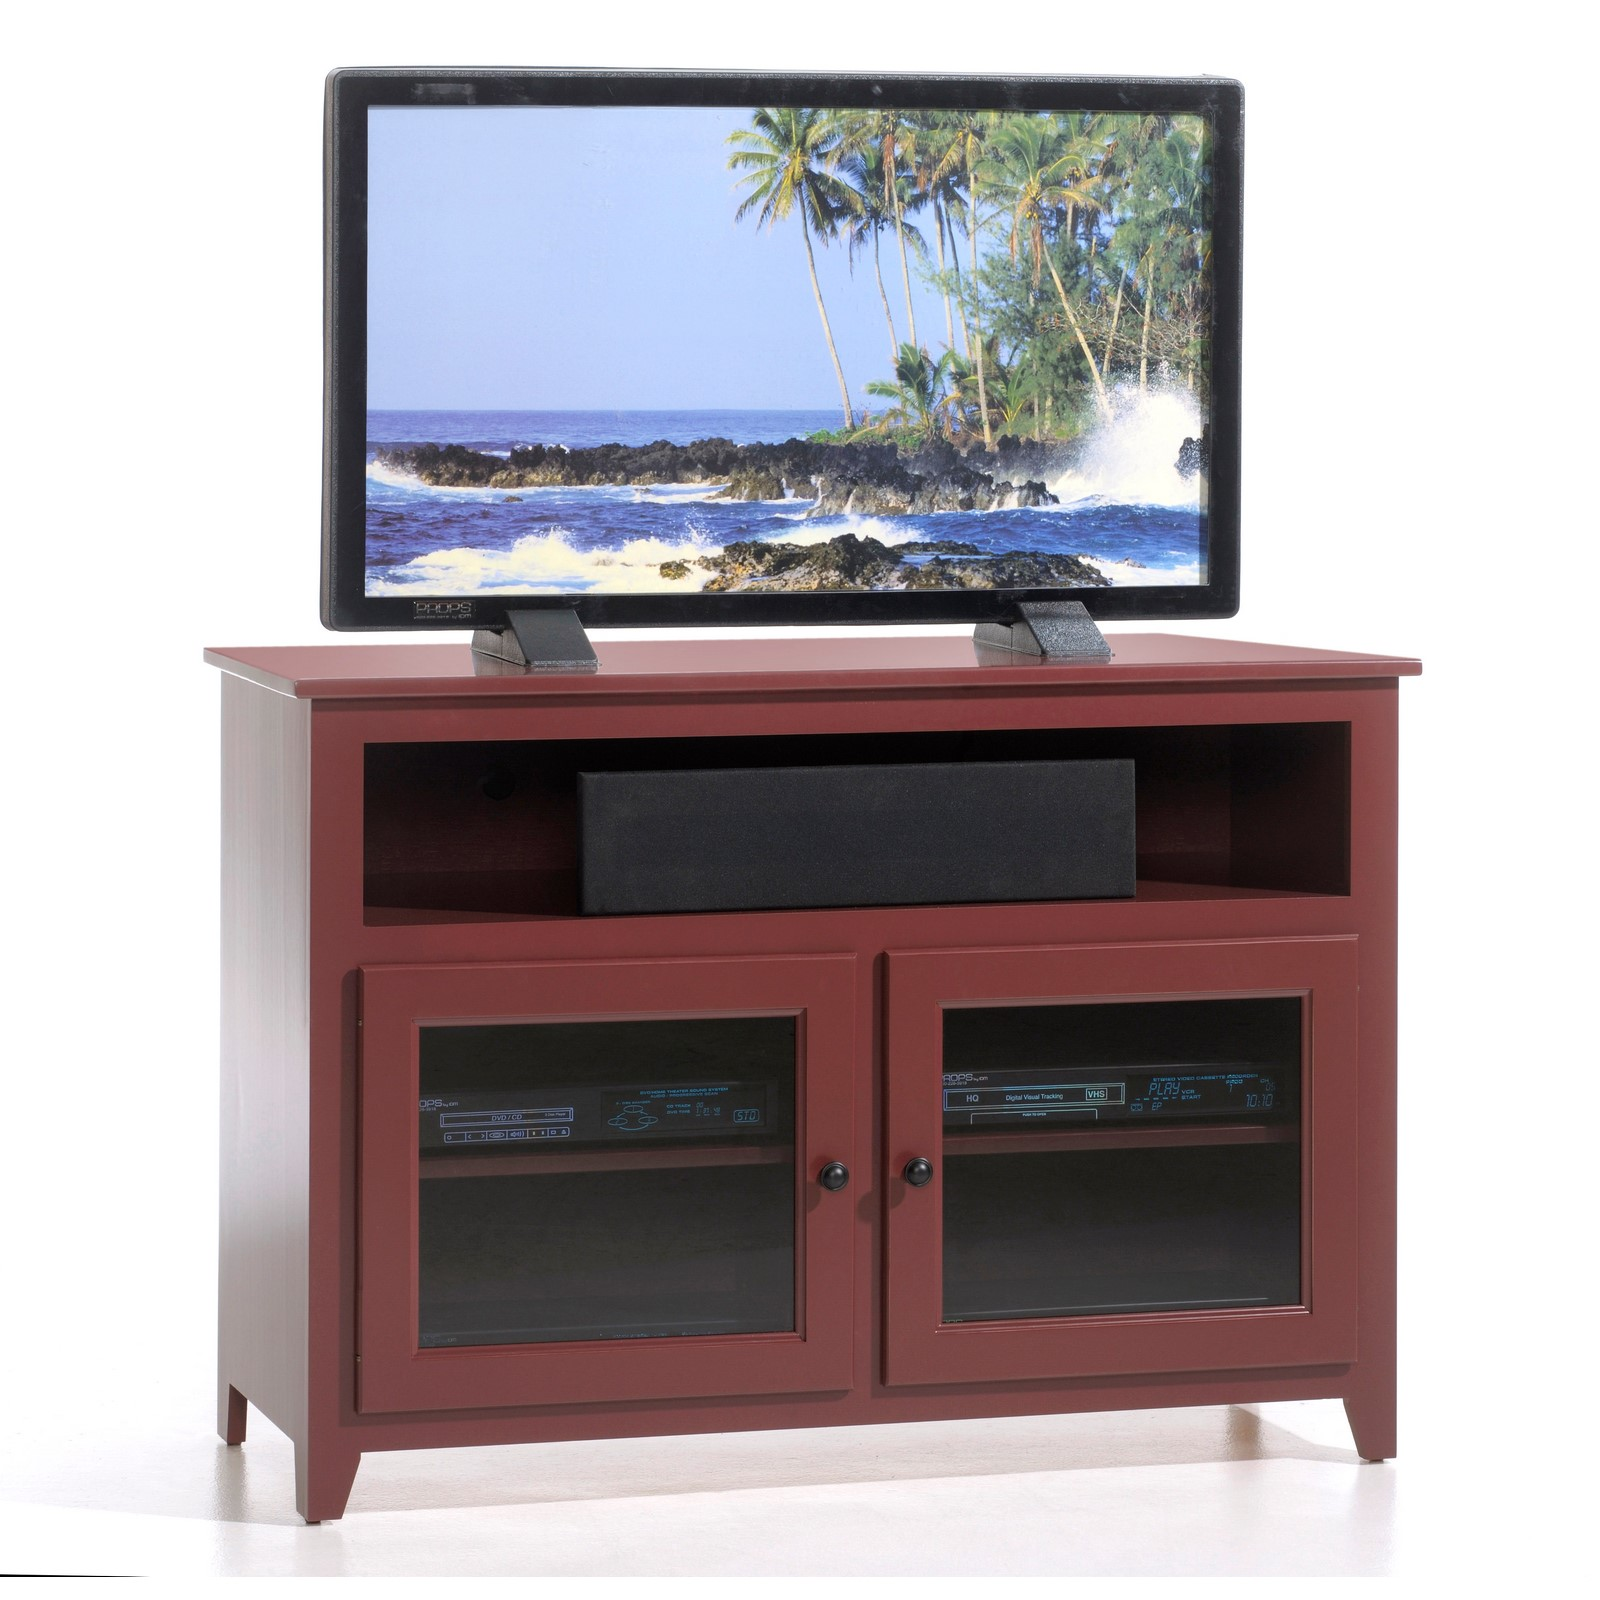 Y t woodcraft economy red maple media console stewart roth 1131 stand br maple barn red geotapseo Image collections